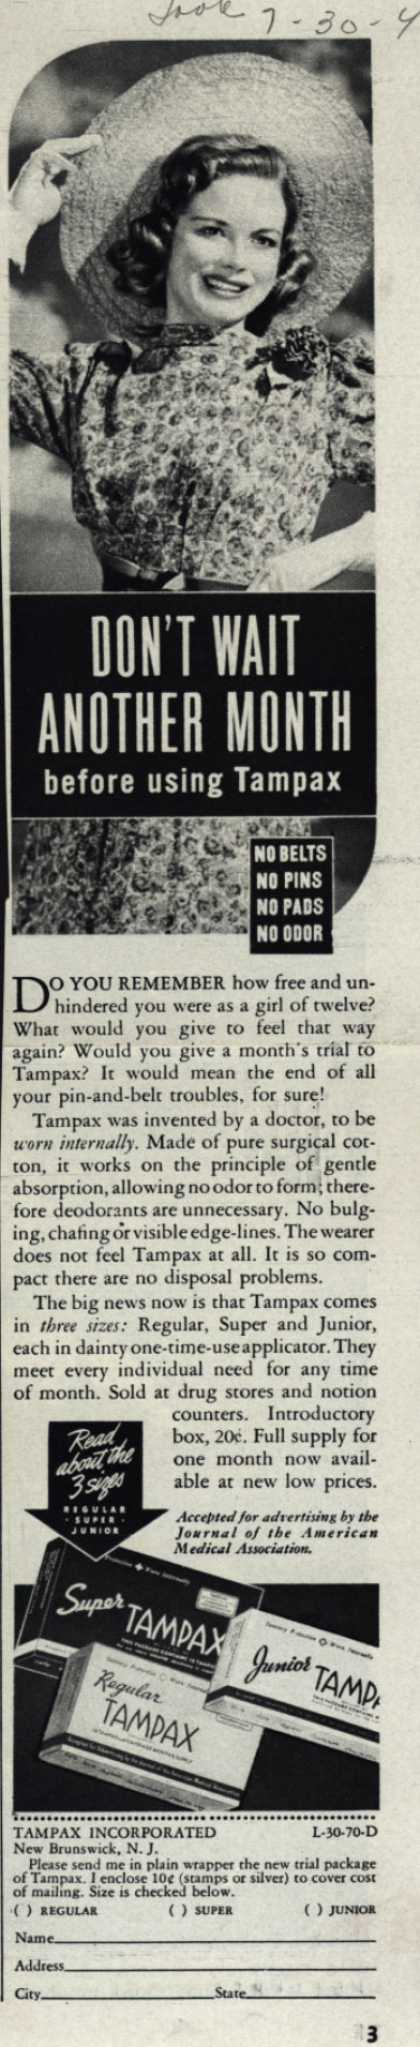 Tampax's Tampons – Don't Wait Another Month before using Tampax (1940)